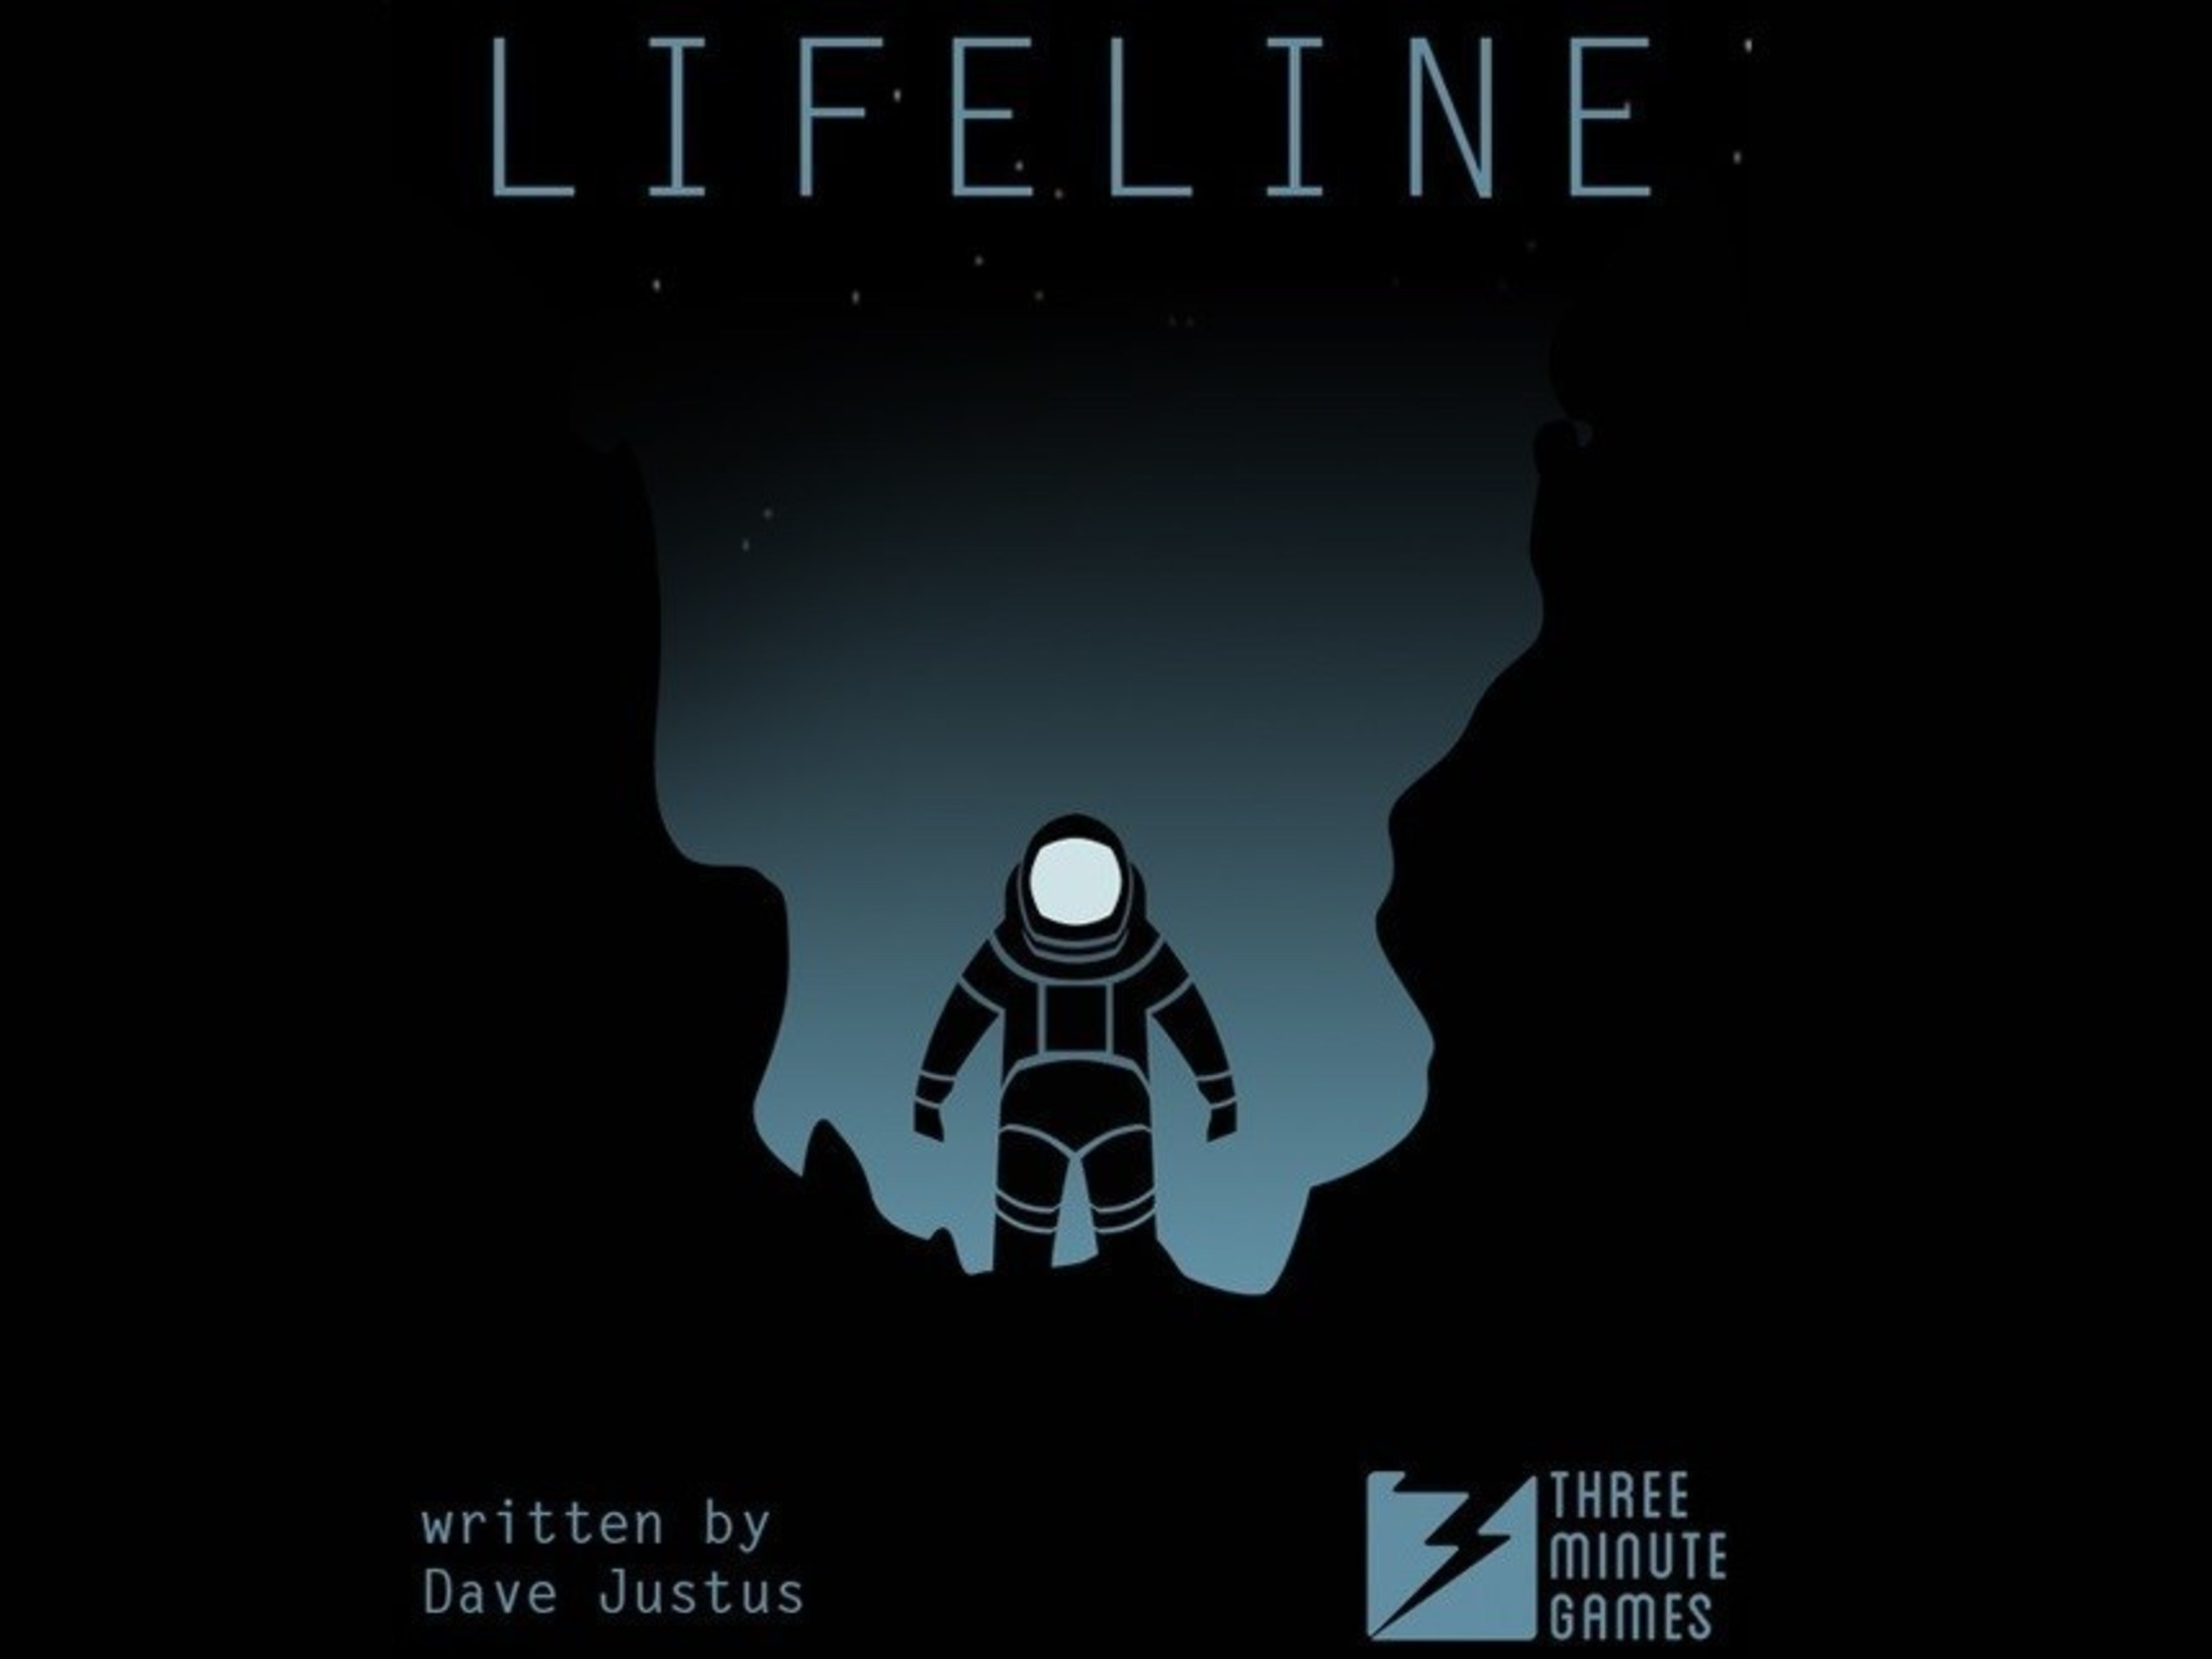 #1 Top Paid iOS Game 'Lifeline'' comes to Android